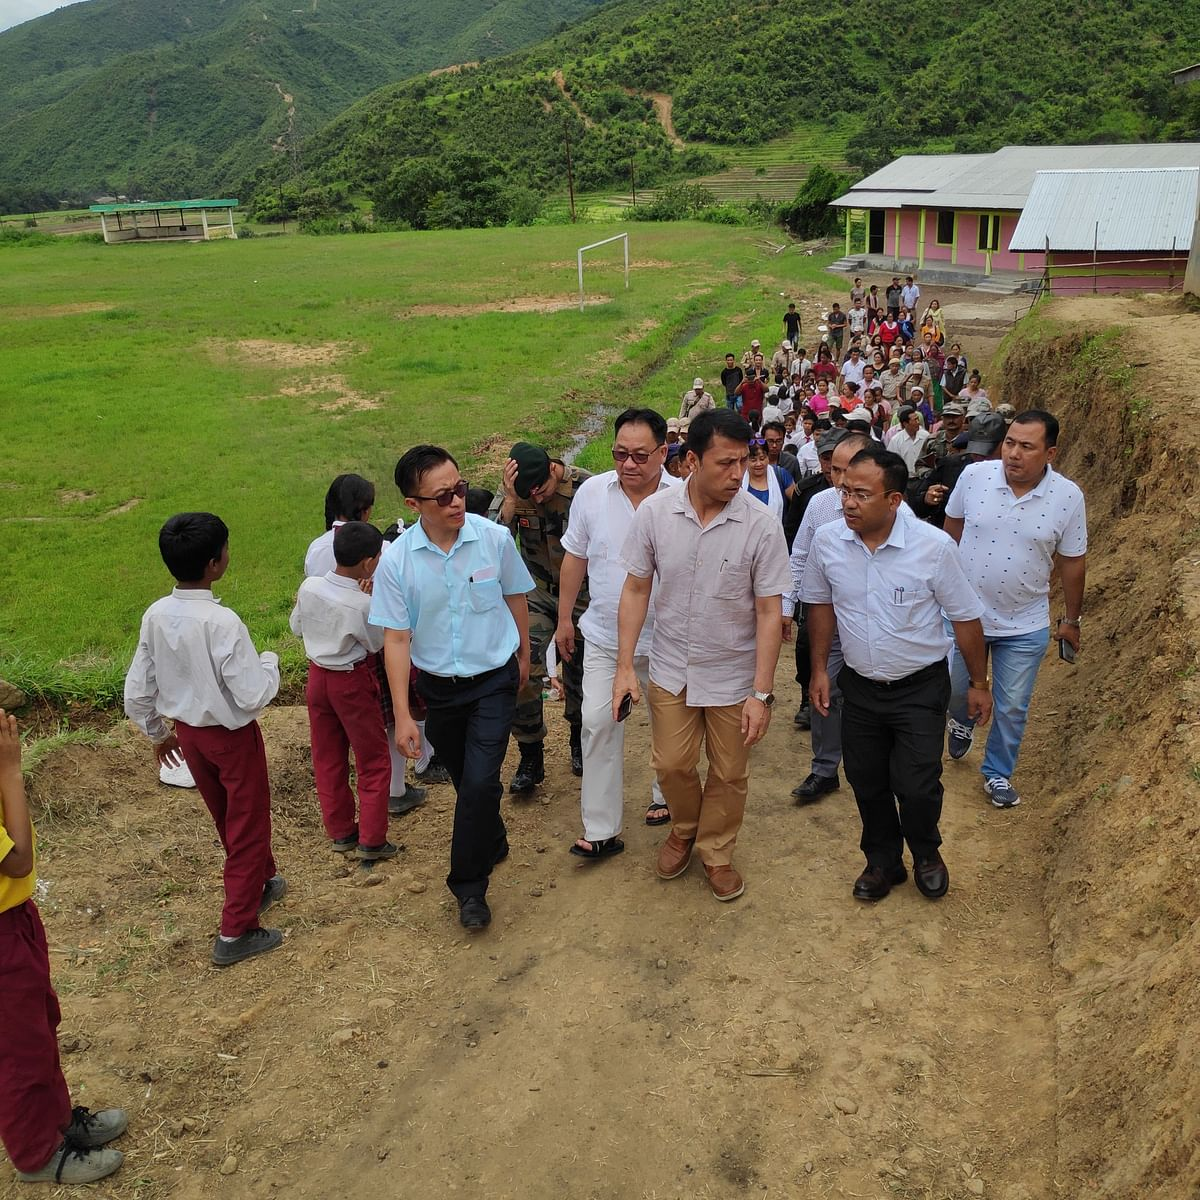 Thokchom Radheshyam Singh, state education minister of Manipur, on a school tour